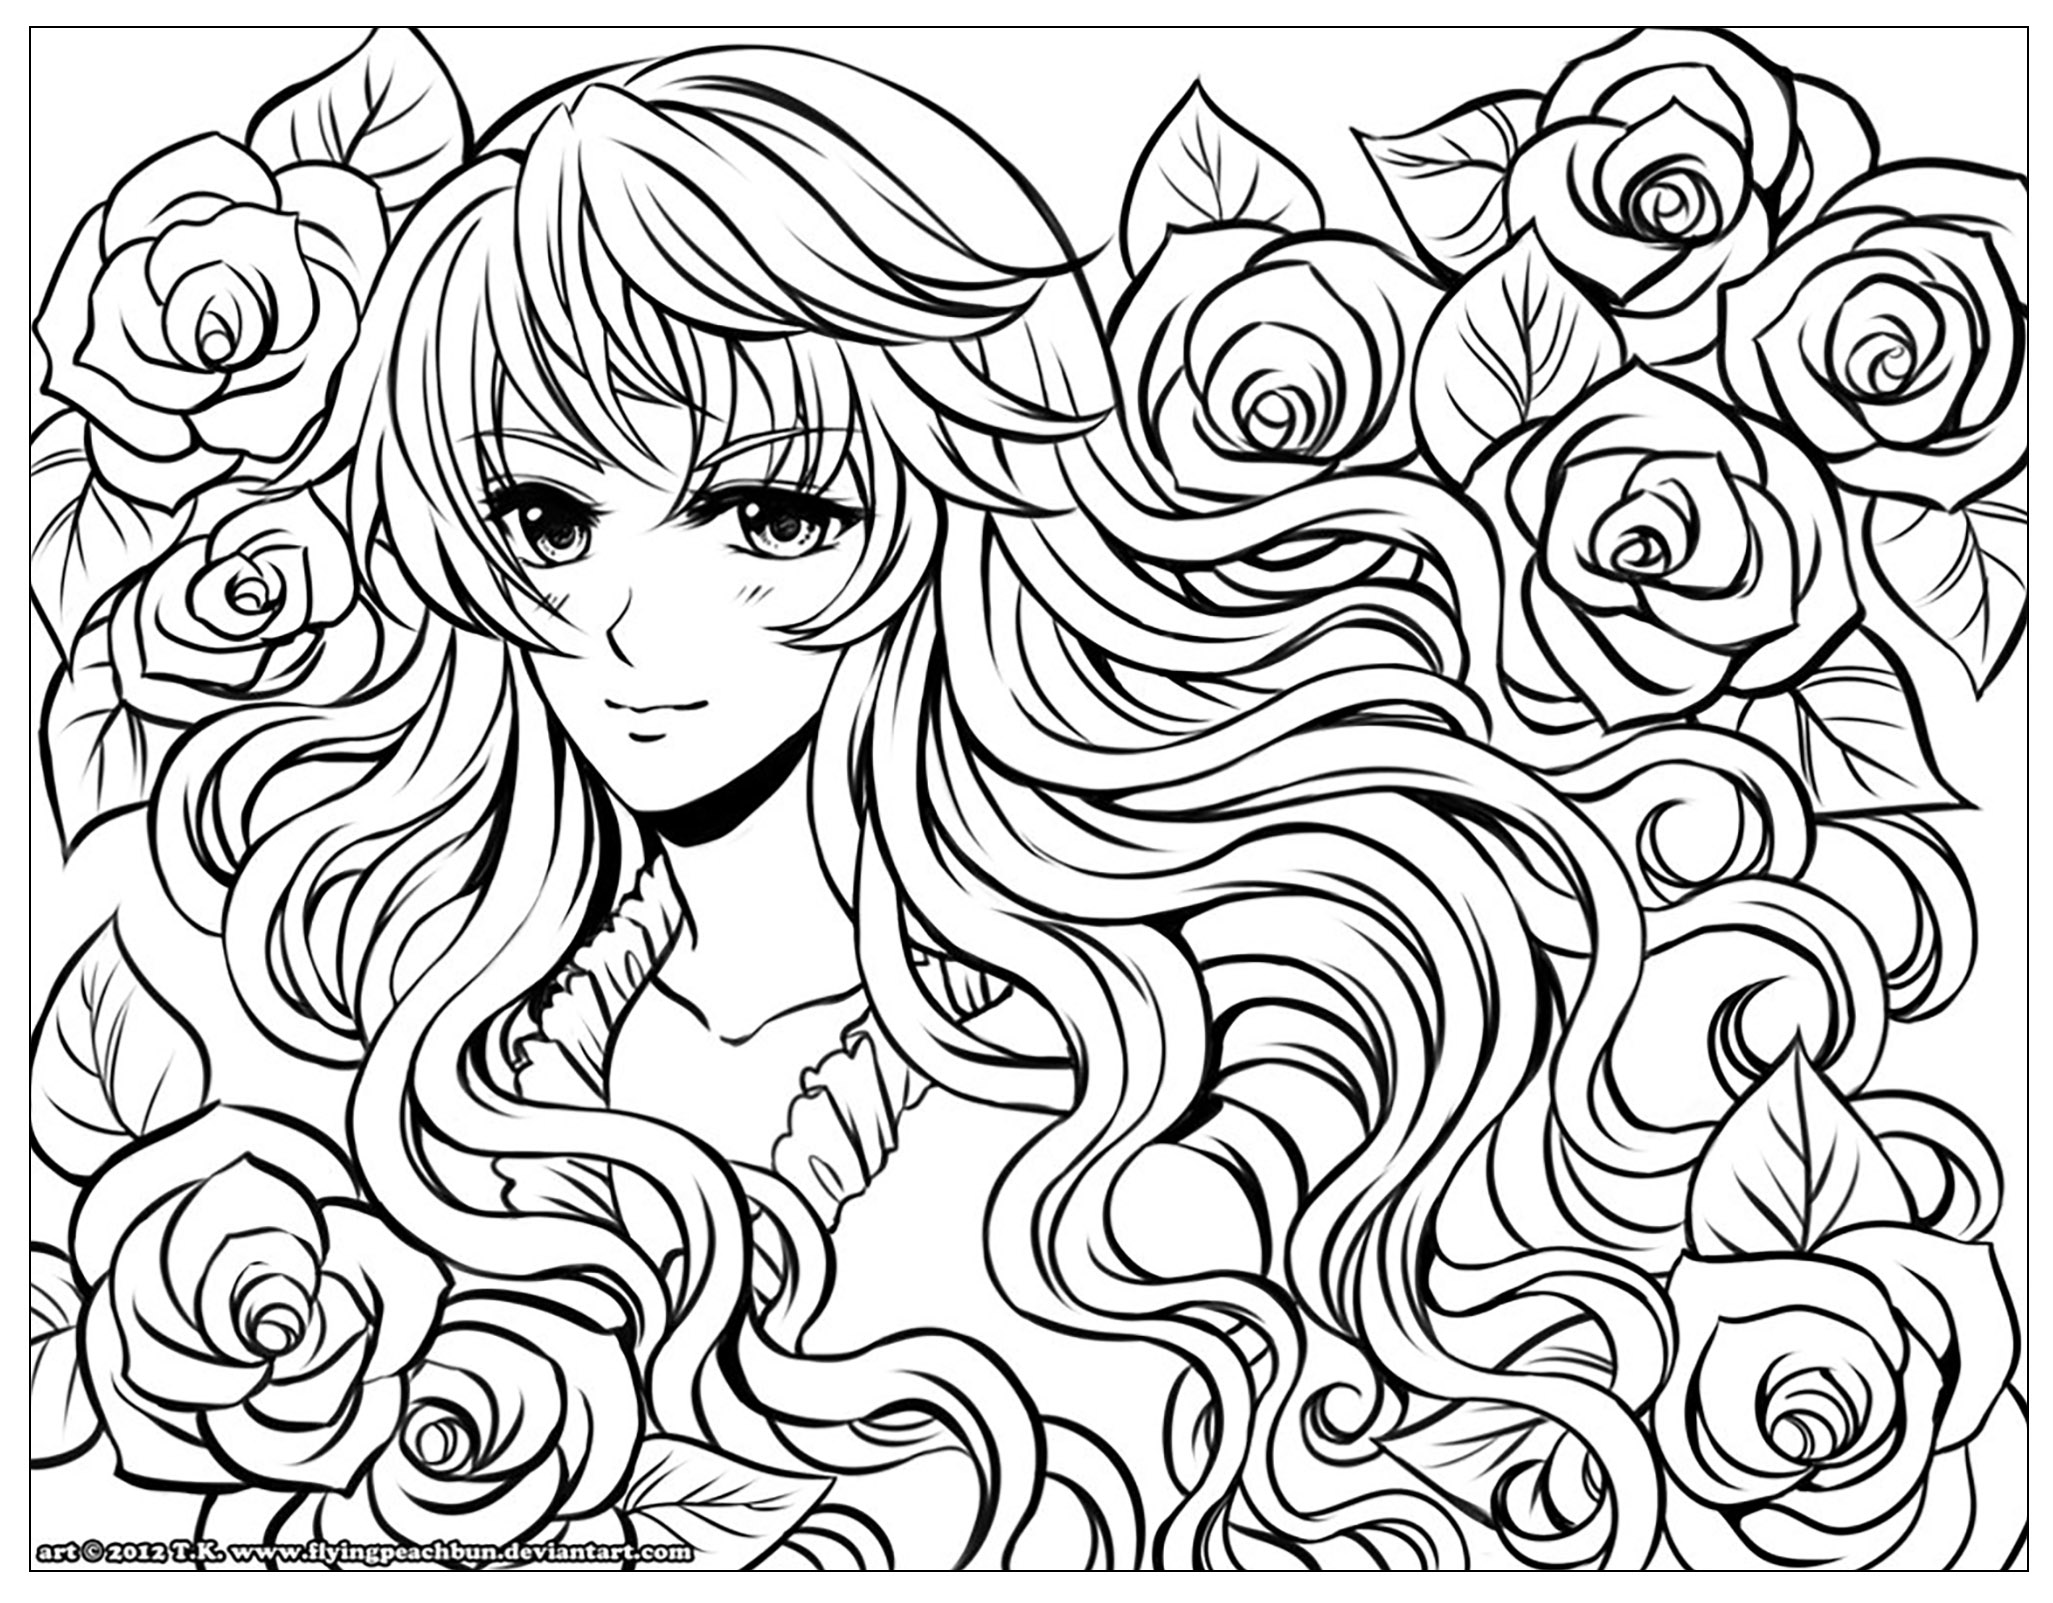 Manga girl with flowers by flyingpeachbun | - Coloring pages for ...